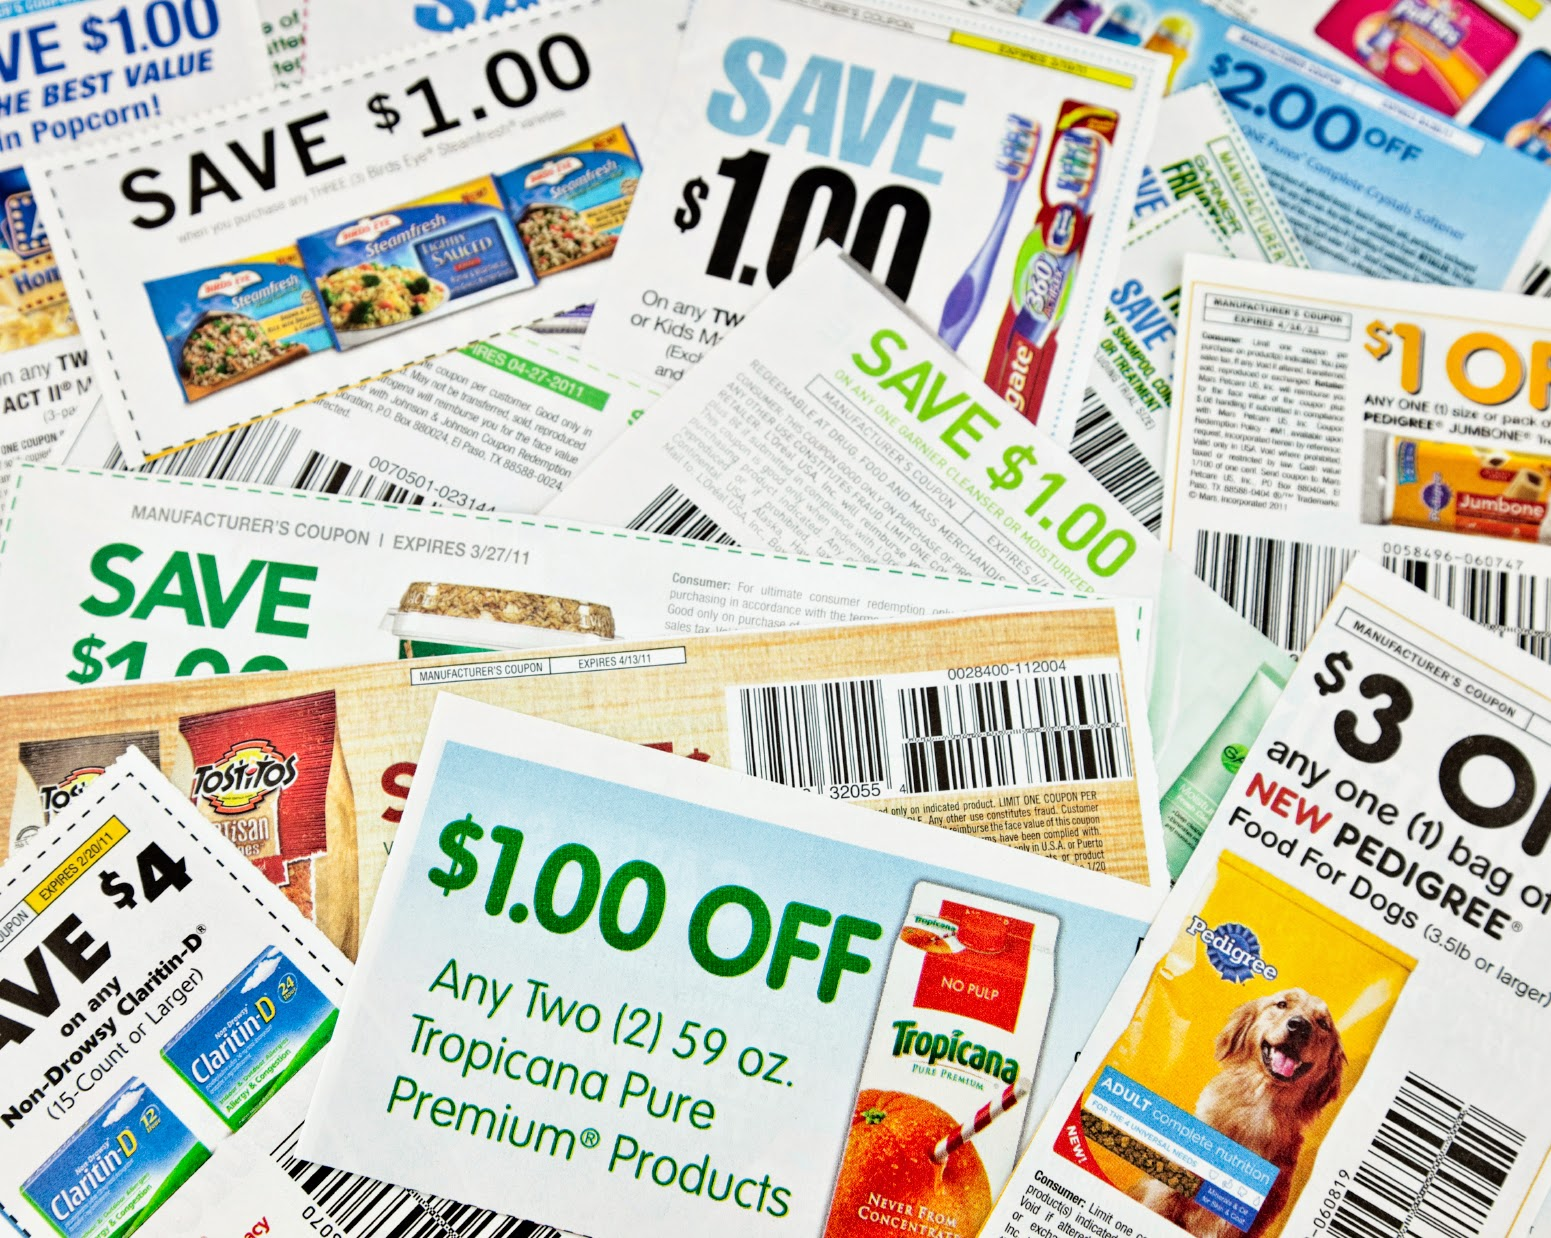 Save on retail, travel, food, groceries, prescriptions with coupons, promo codes, sales, cash back offers, gift card deals for thousands of stores & brands at RetailMeNot, your ultimate savings destination.